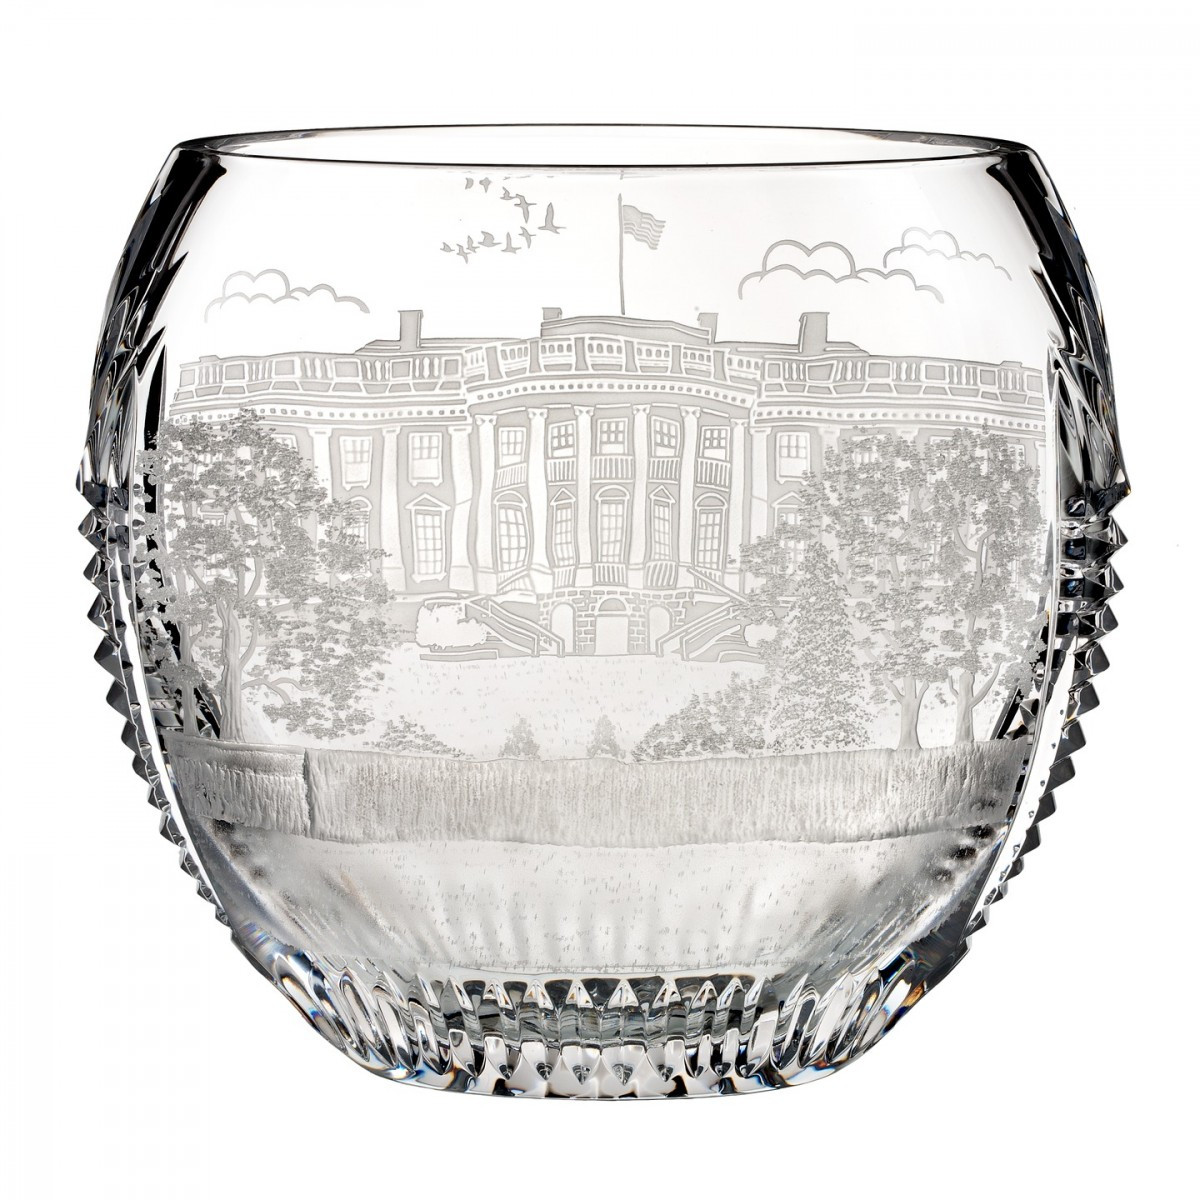 Marquis by Waterford Vase Sparkle Of America the Beautiful Washington D C 9 3in Bowl House Of within America the Beautiful Washington D C 9 3in Bowl